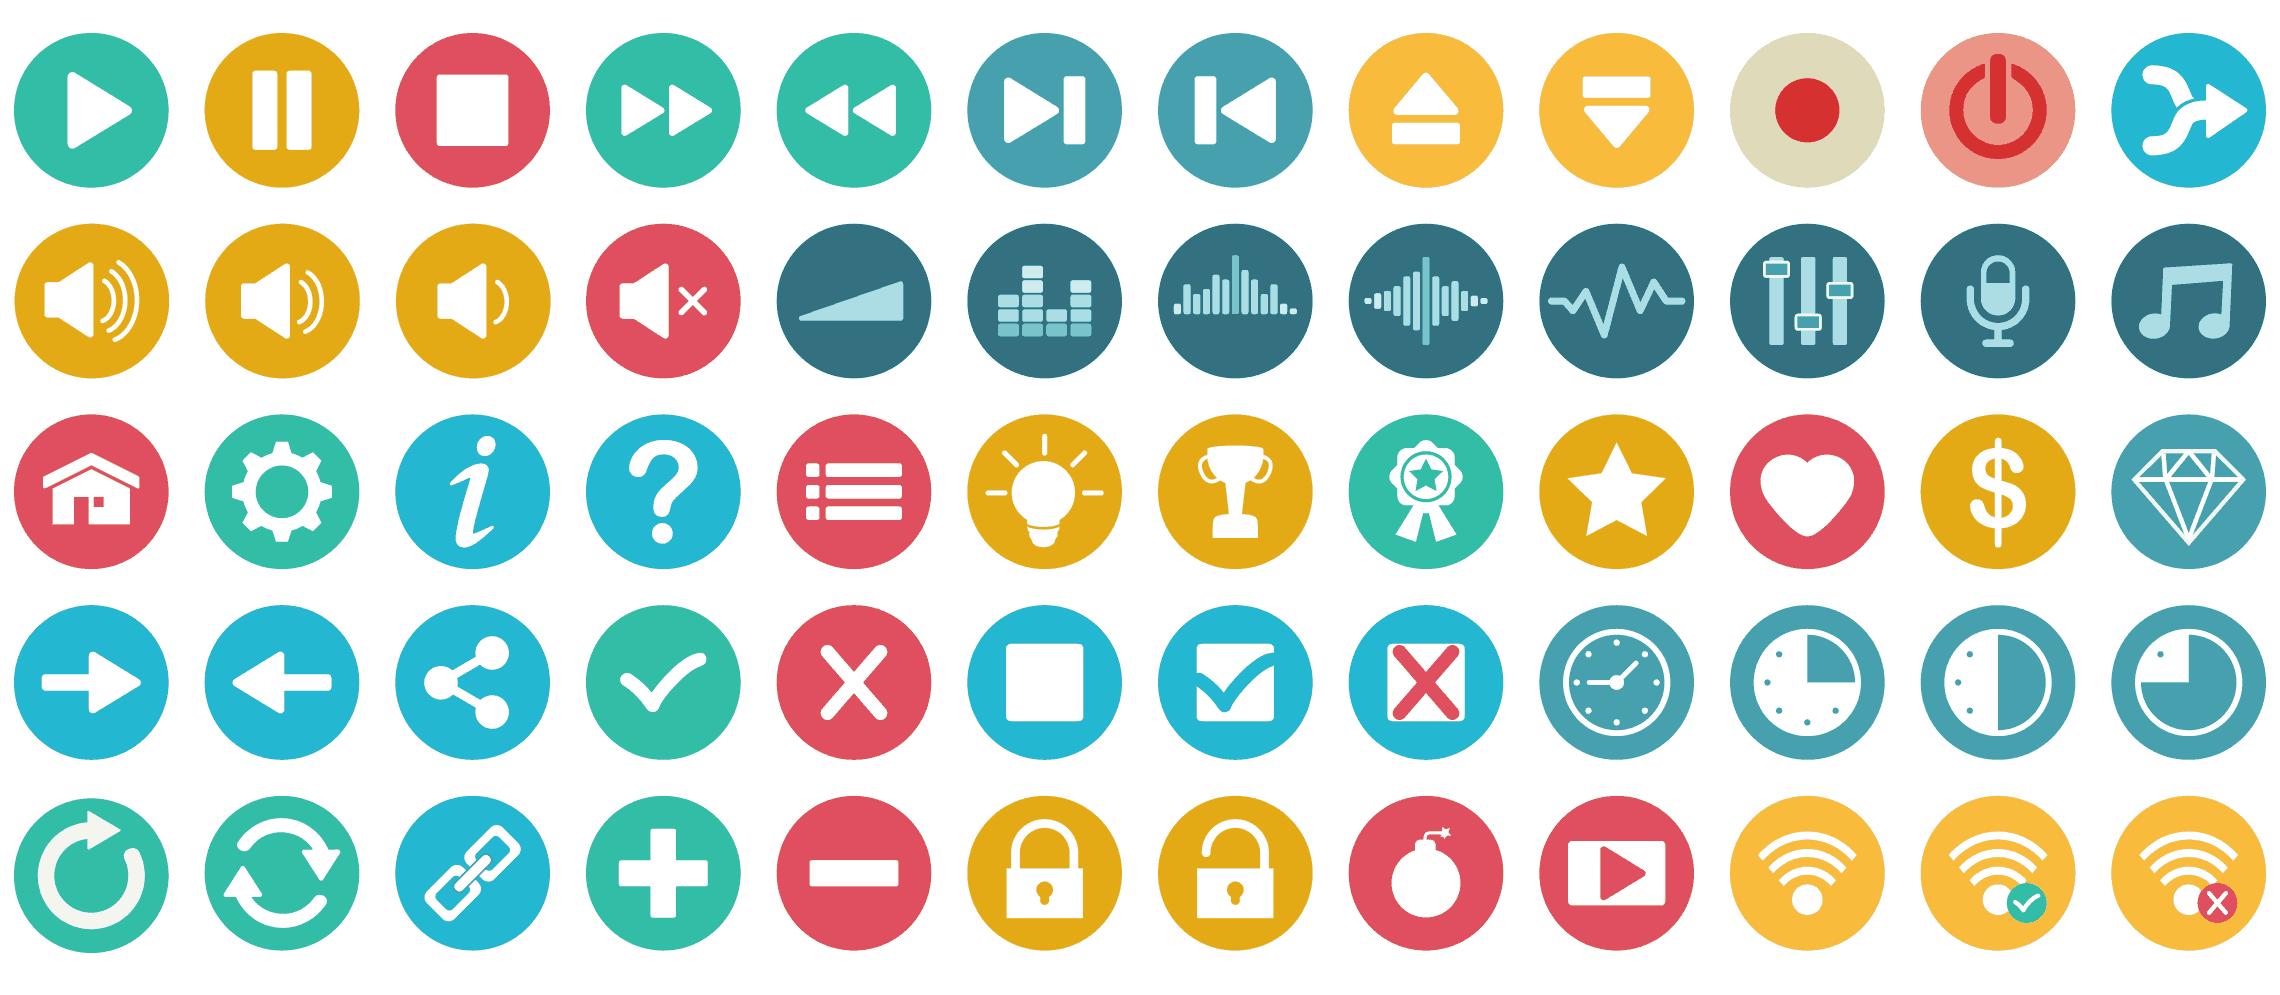 audio-video-game-controls-flat-icons-vol-1-preview